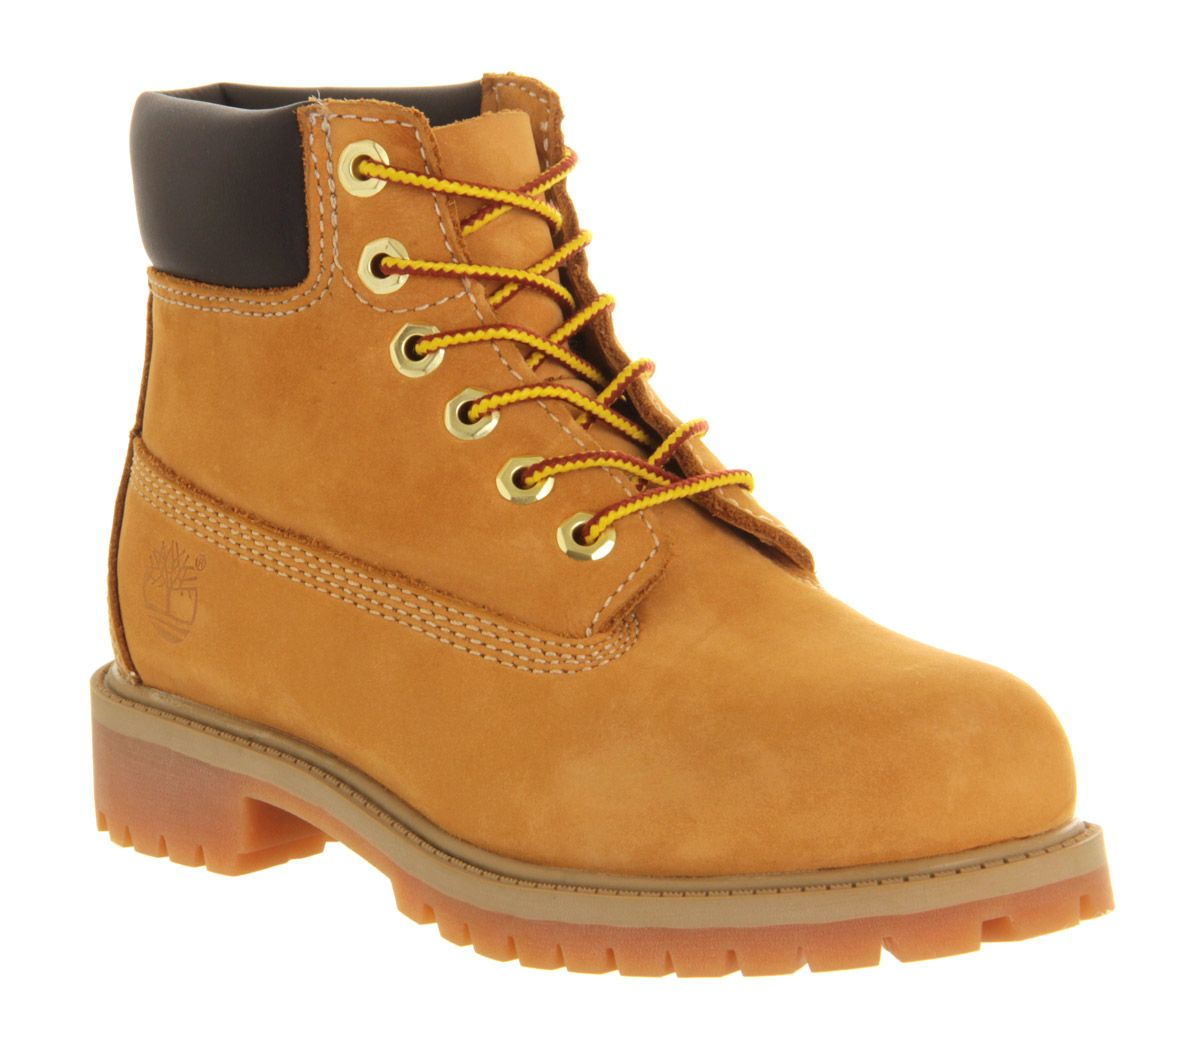 57f801b36d01 Timberland 6 Inch Classic Boots Youth Wheat Nubuck - Unisex